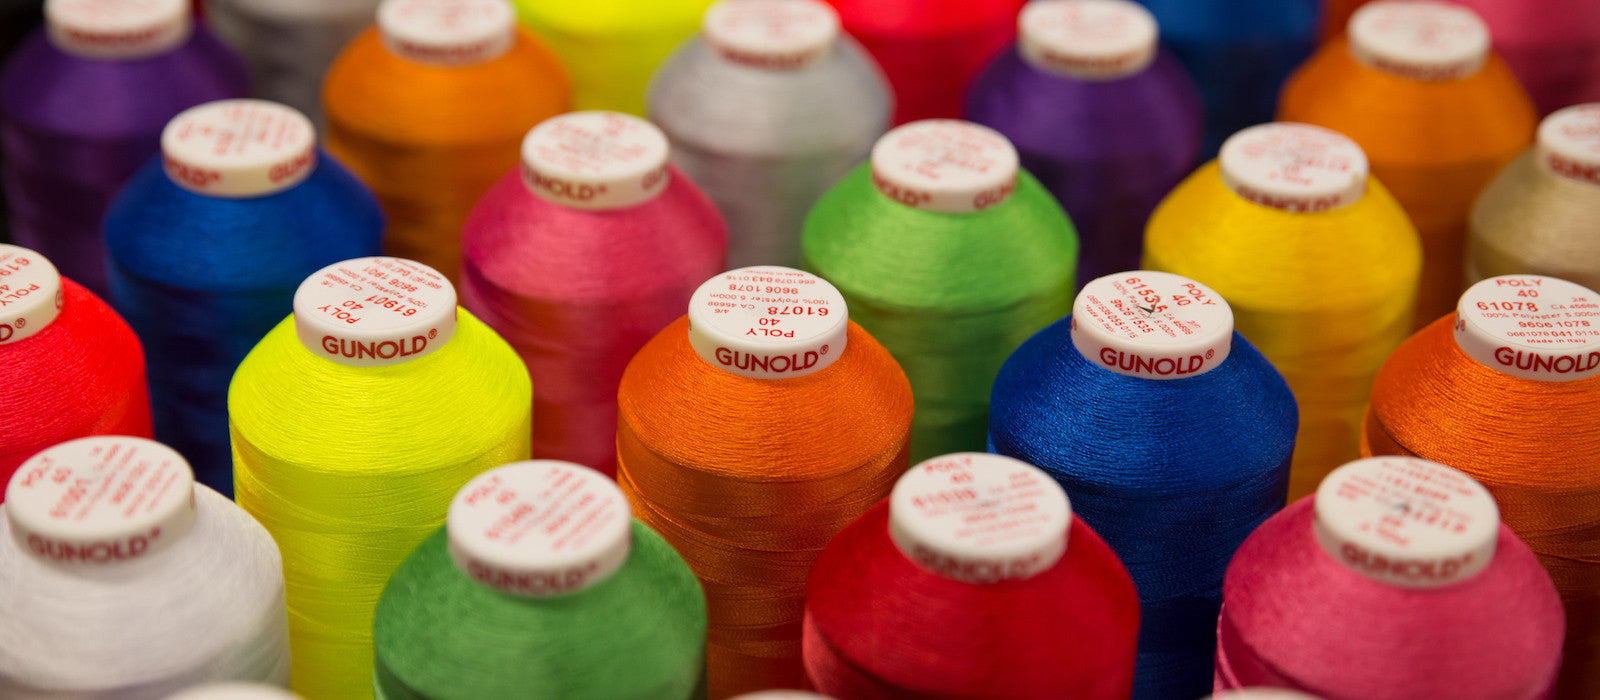 4,371 Embroidery Products - Ready to Ship!